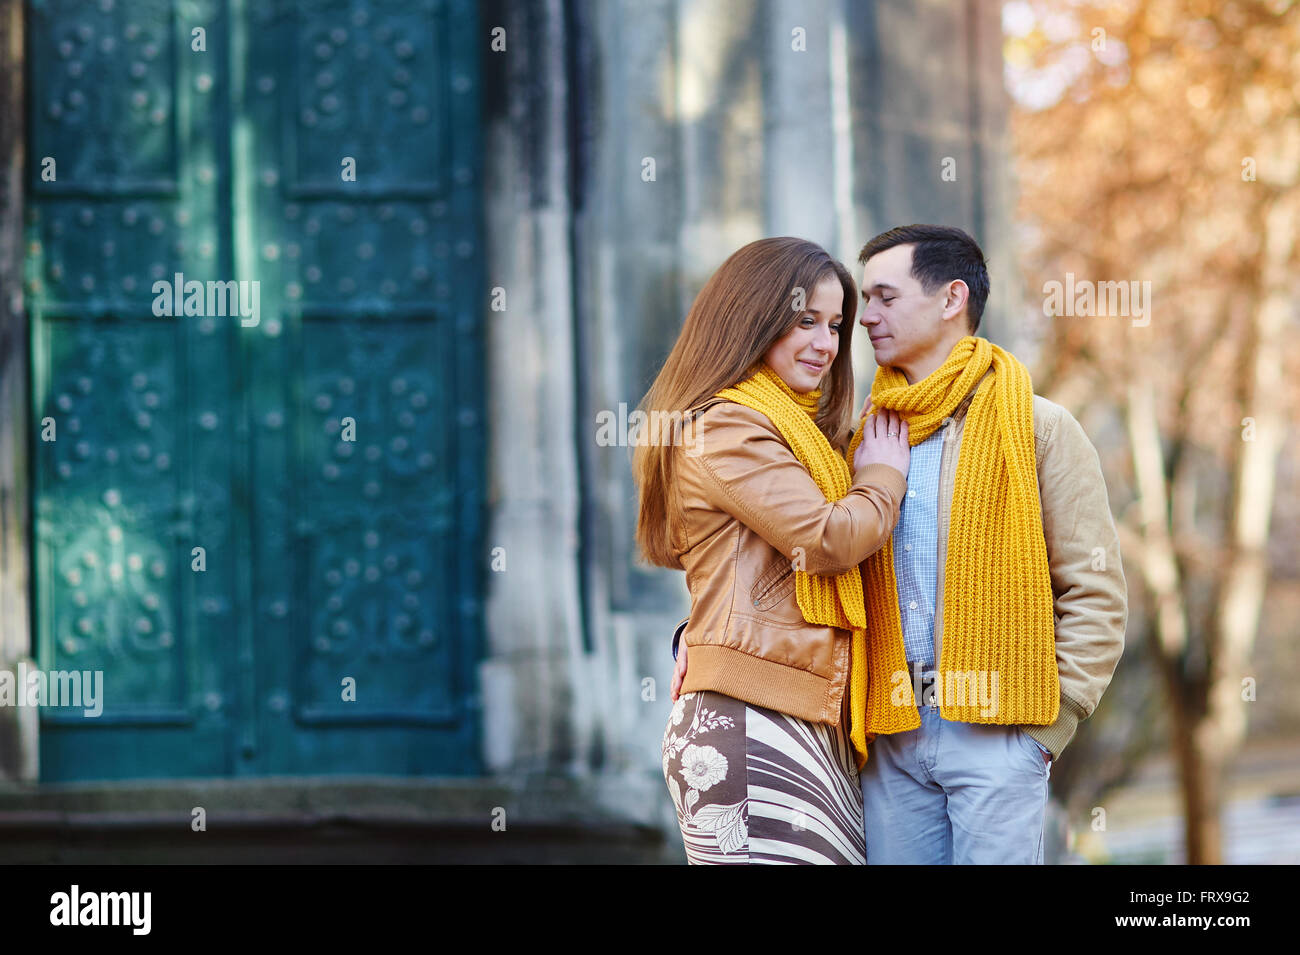 Cheerful couple walking through the city together Stock Photo